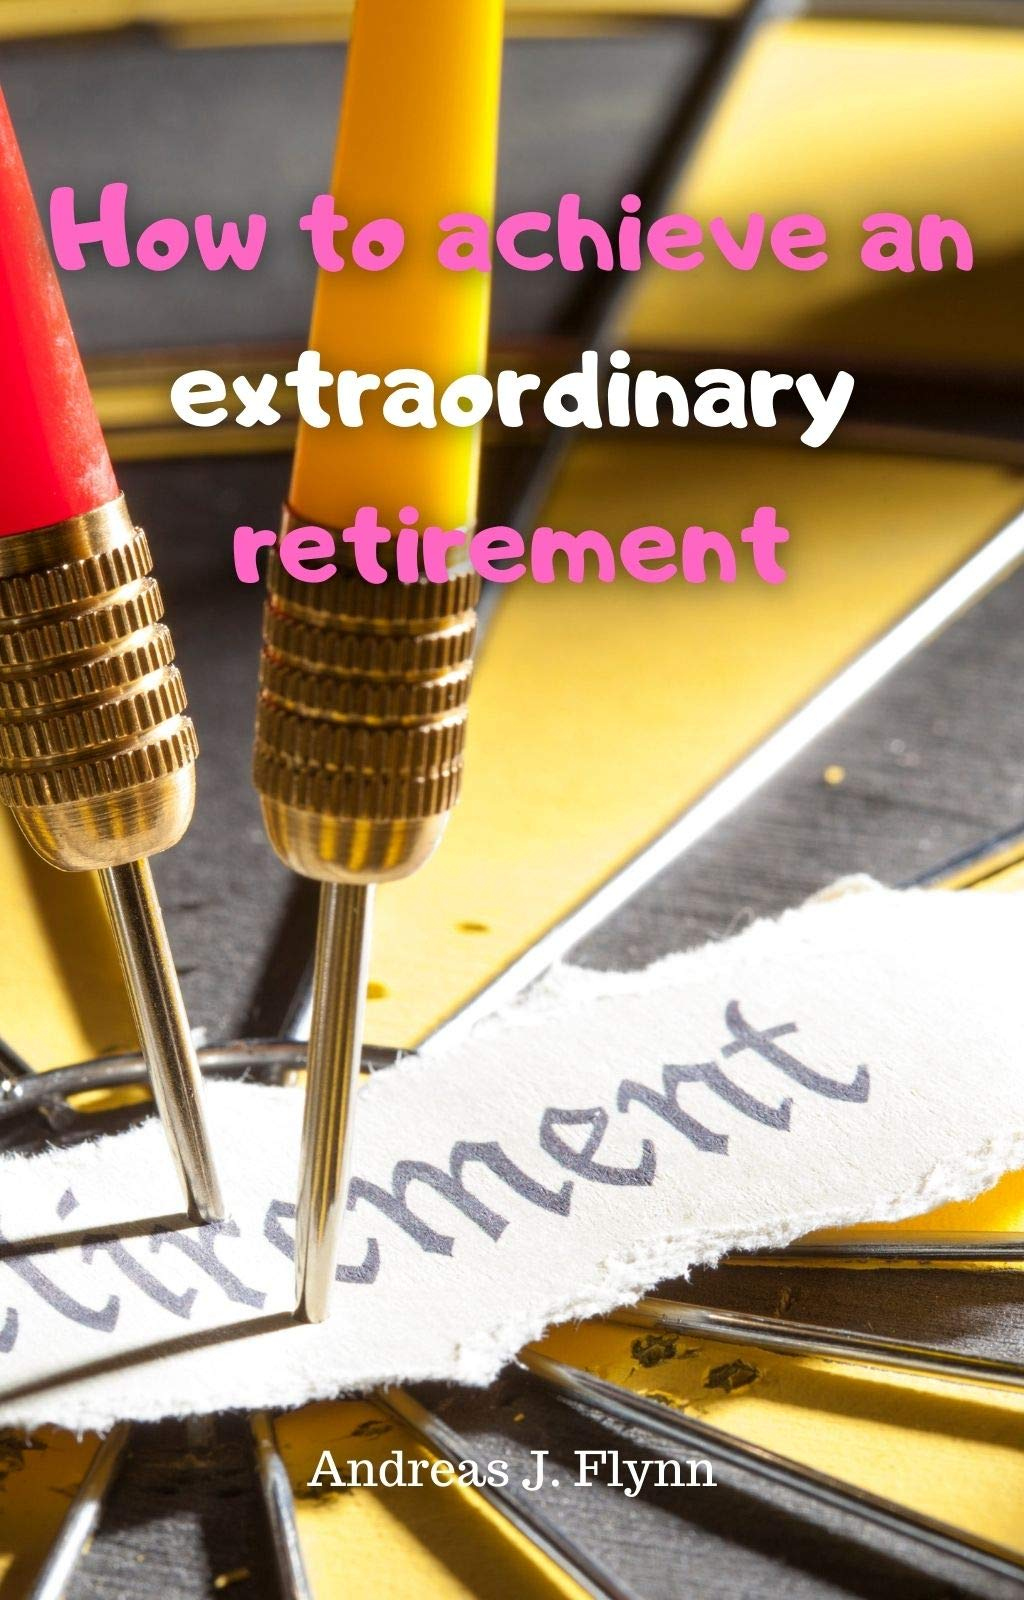 How to achieve an extraordinary retirement: retirement guide, retirement income, retirement planning, retirement accounts, retirement teachers and military, ... retirement x (Learning to live Book 3)